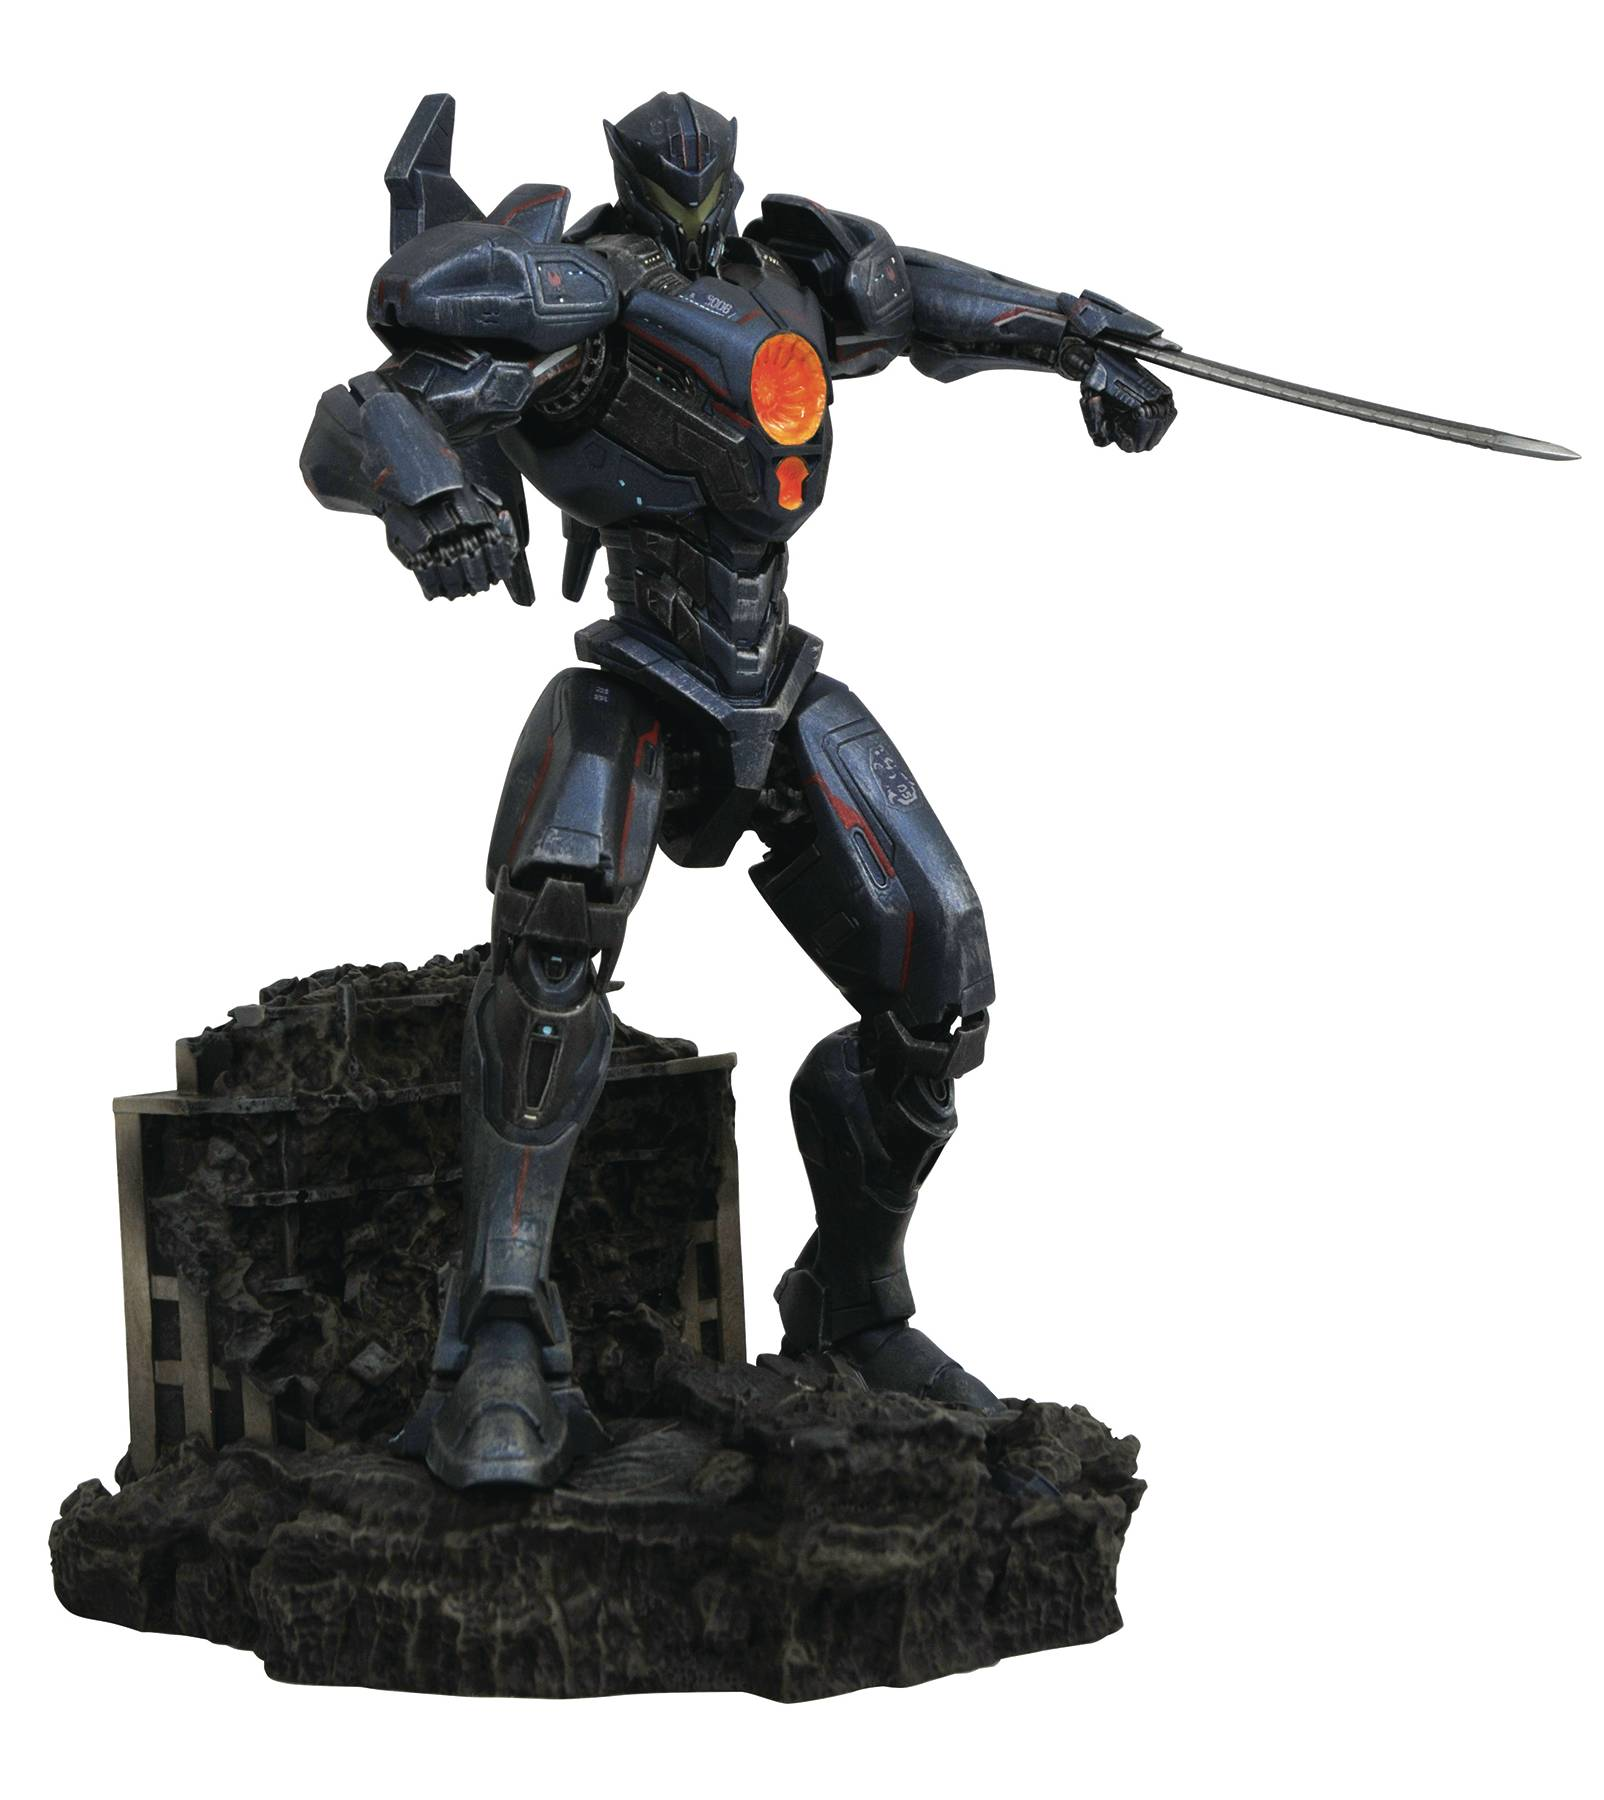 Diamond Gallery Pacific Rim Gypsy Avenger Statue